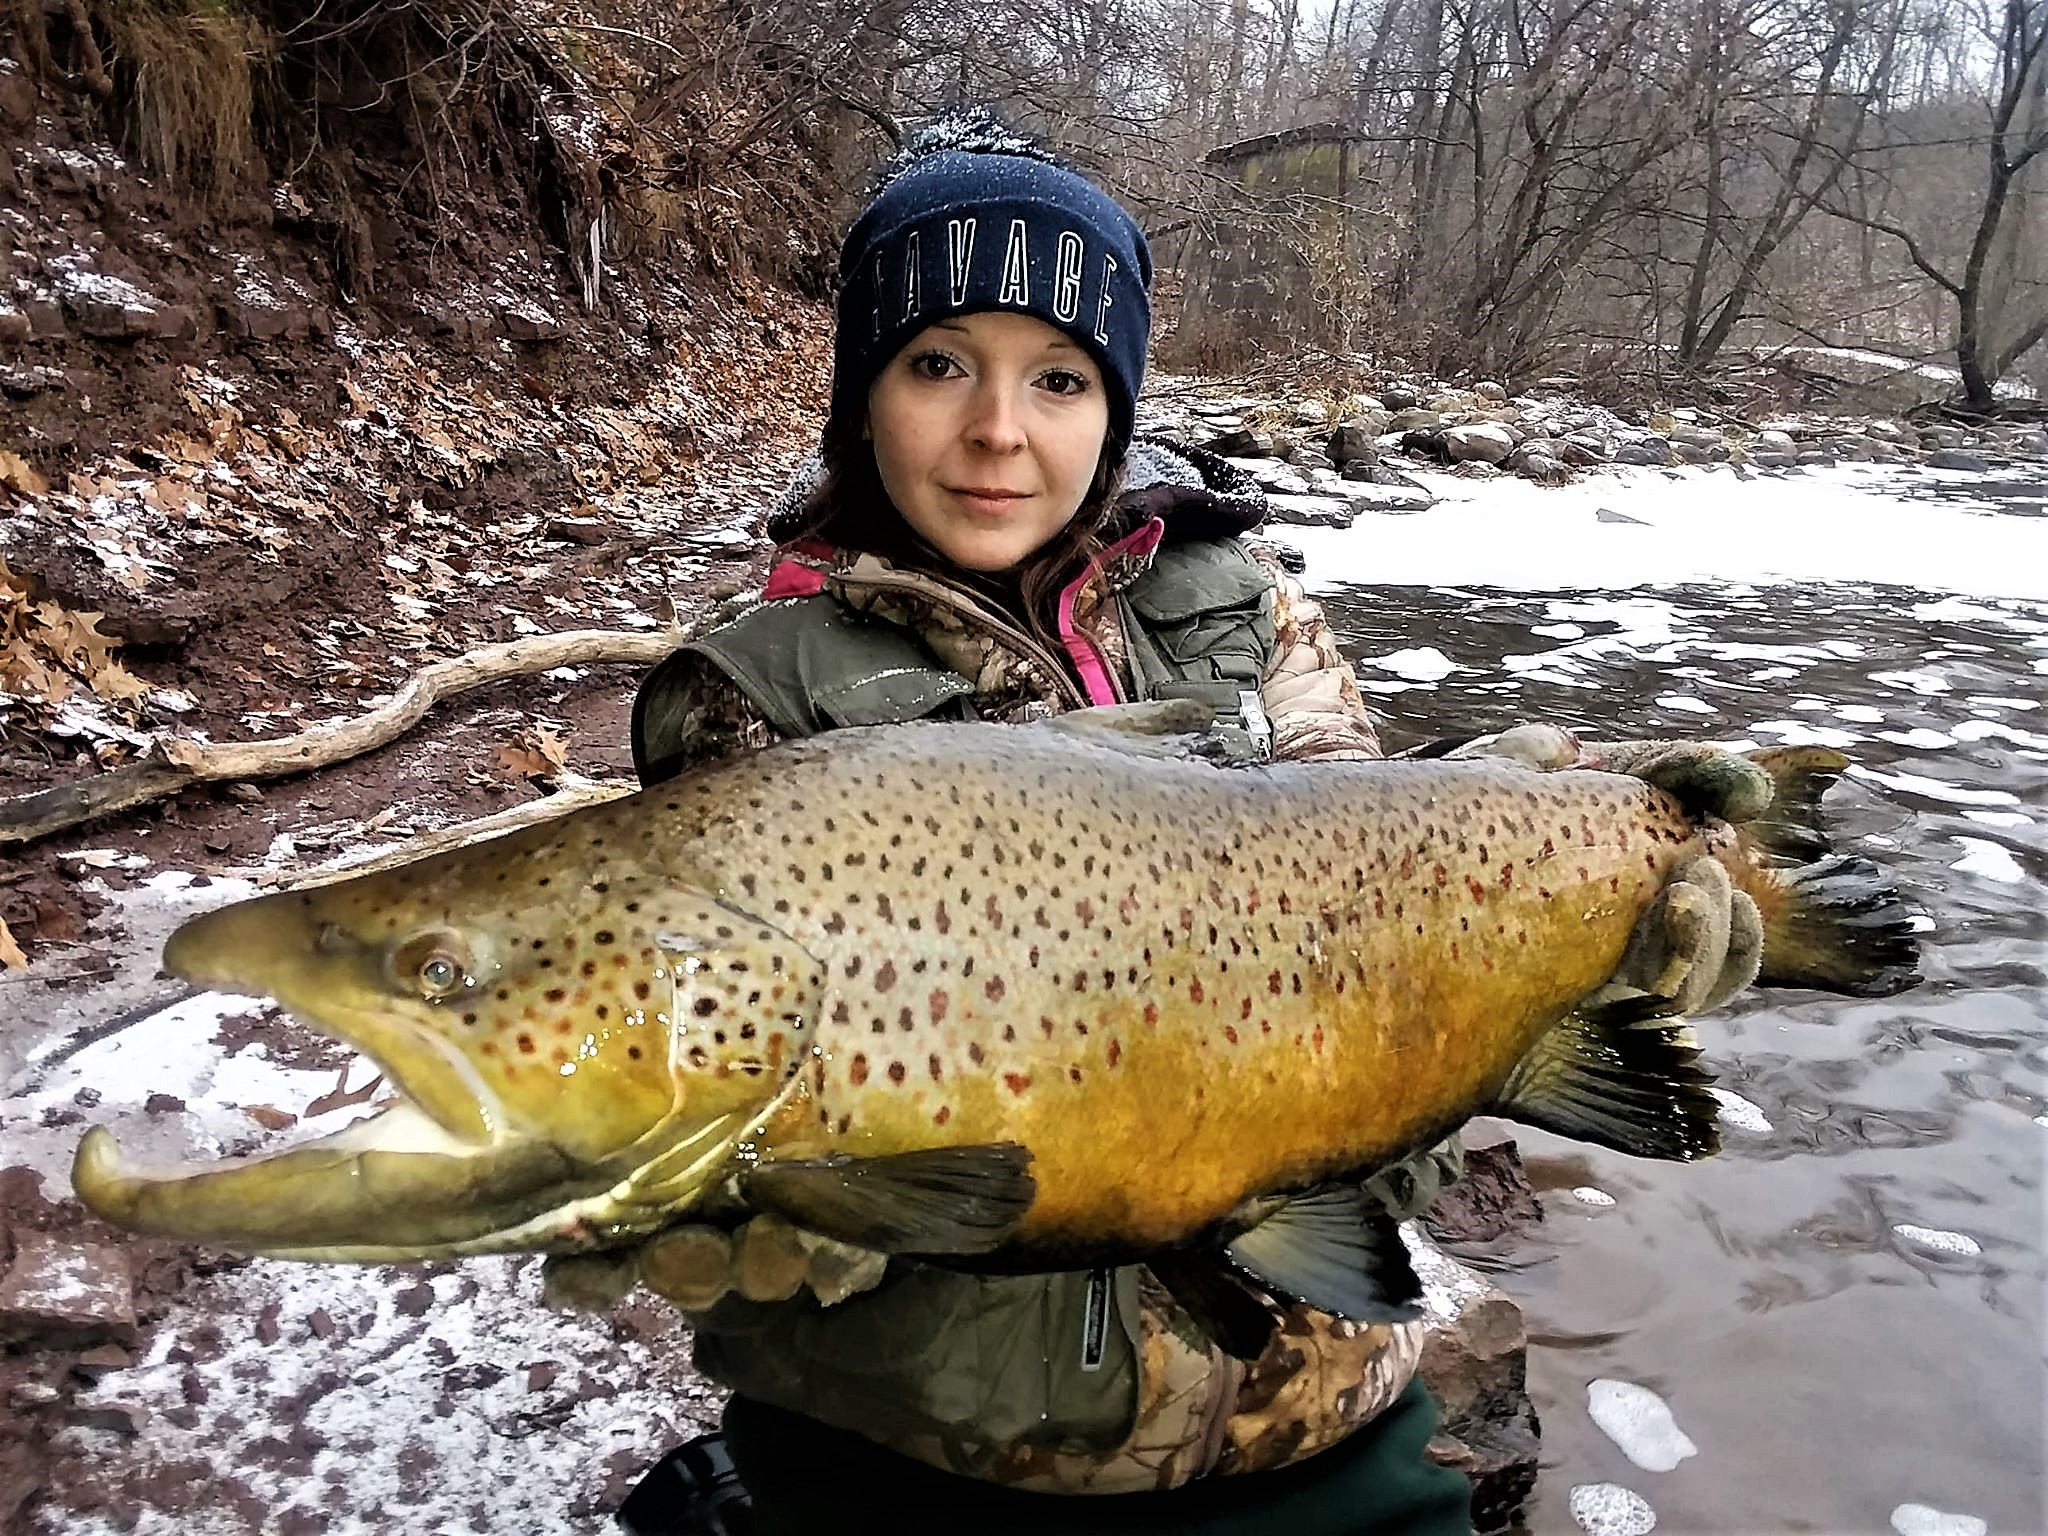 Brown Trout, Walleye, Steelhead Dominate the Niagara Region Winter Fishing Action